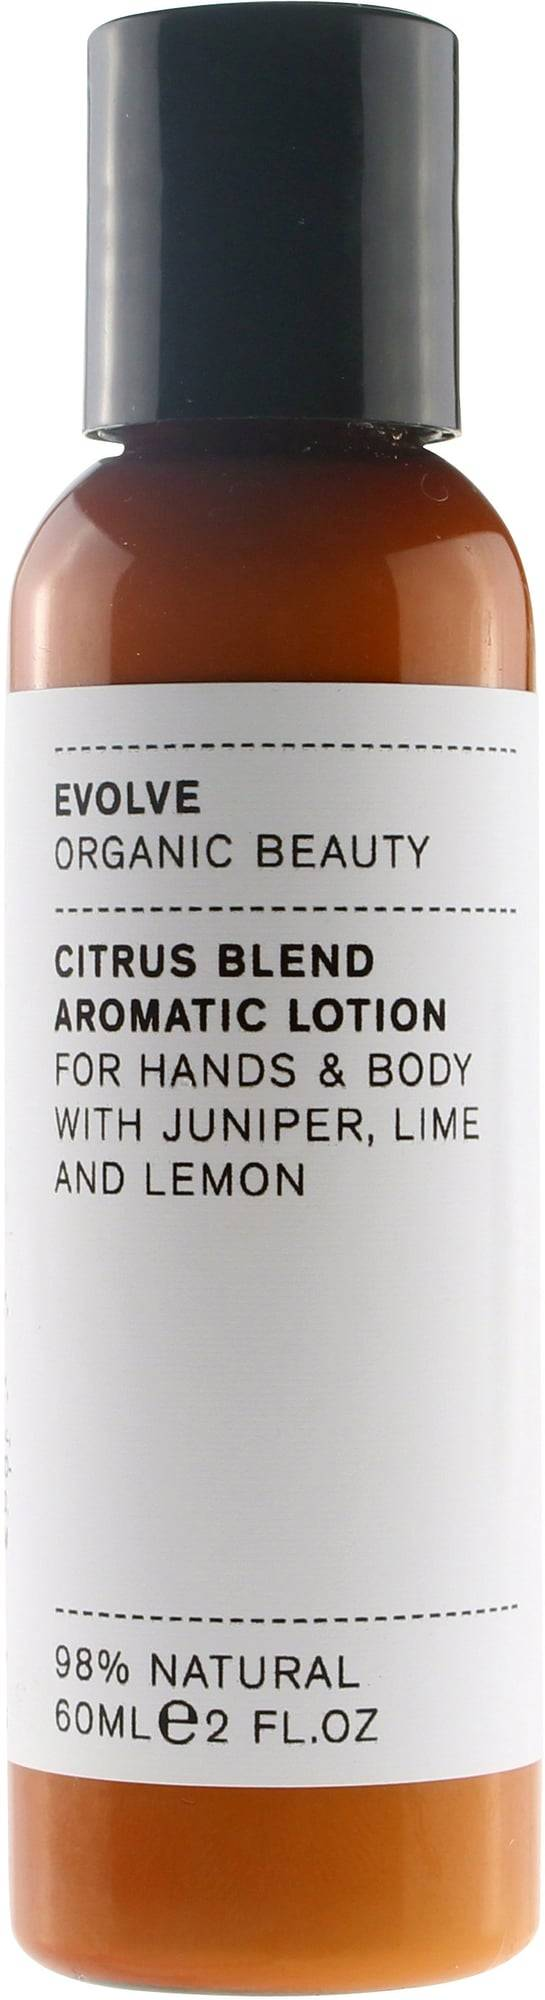 Evolve Organic Beauty Citrus Blend Aromatic Lotion - 60 ml